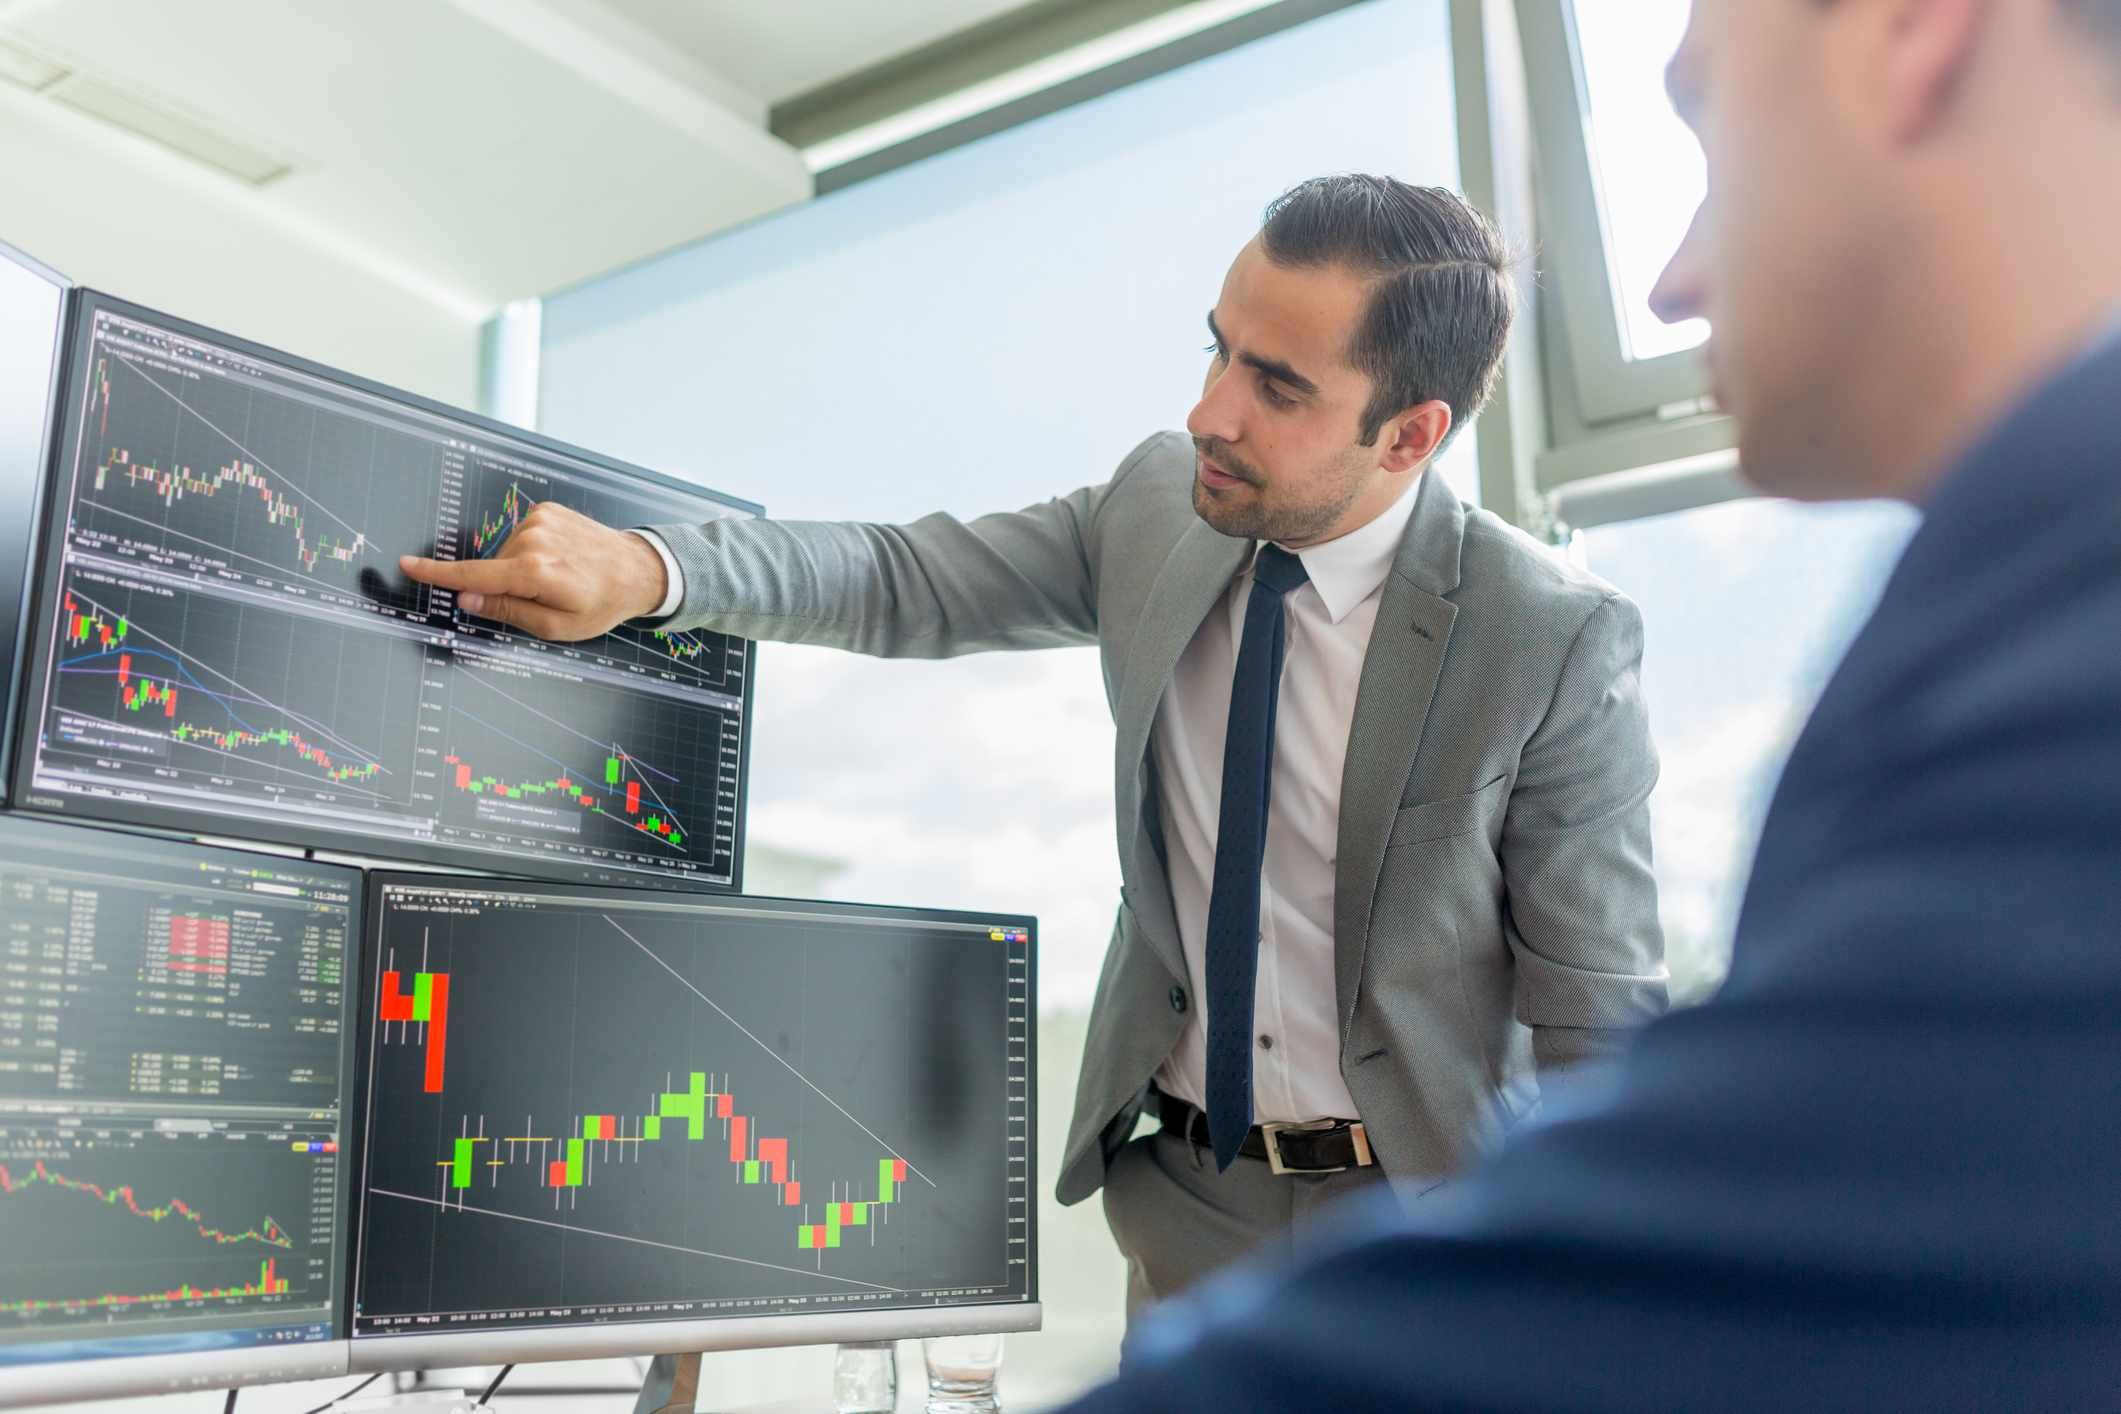 Trading Stocks, Forex or Crypto – Which One Is For Me?